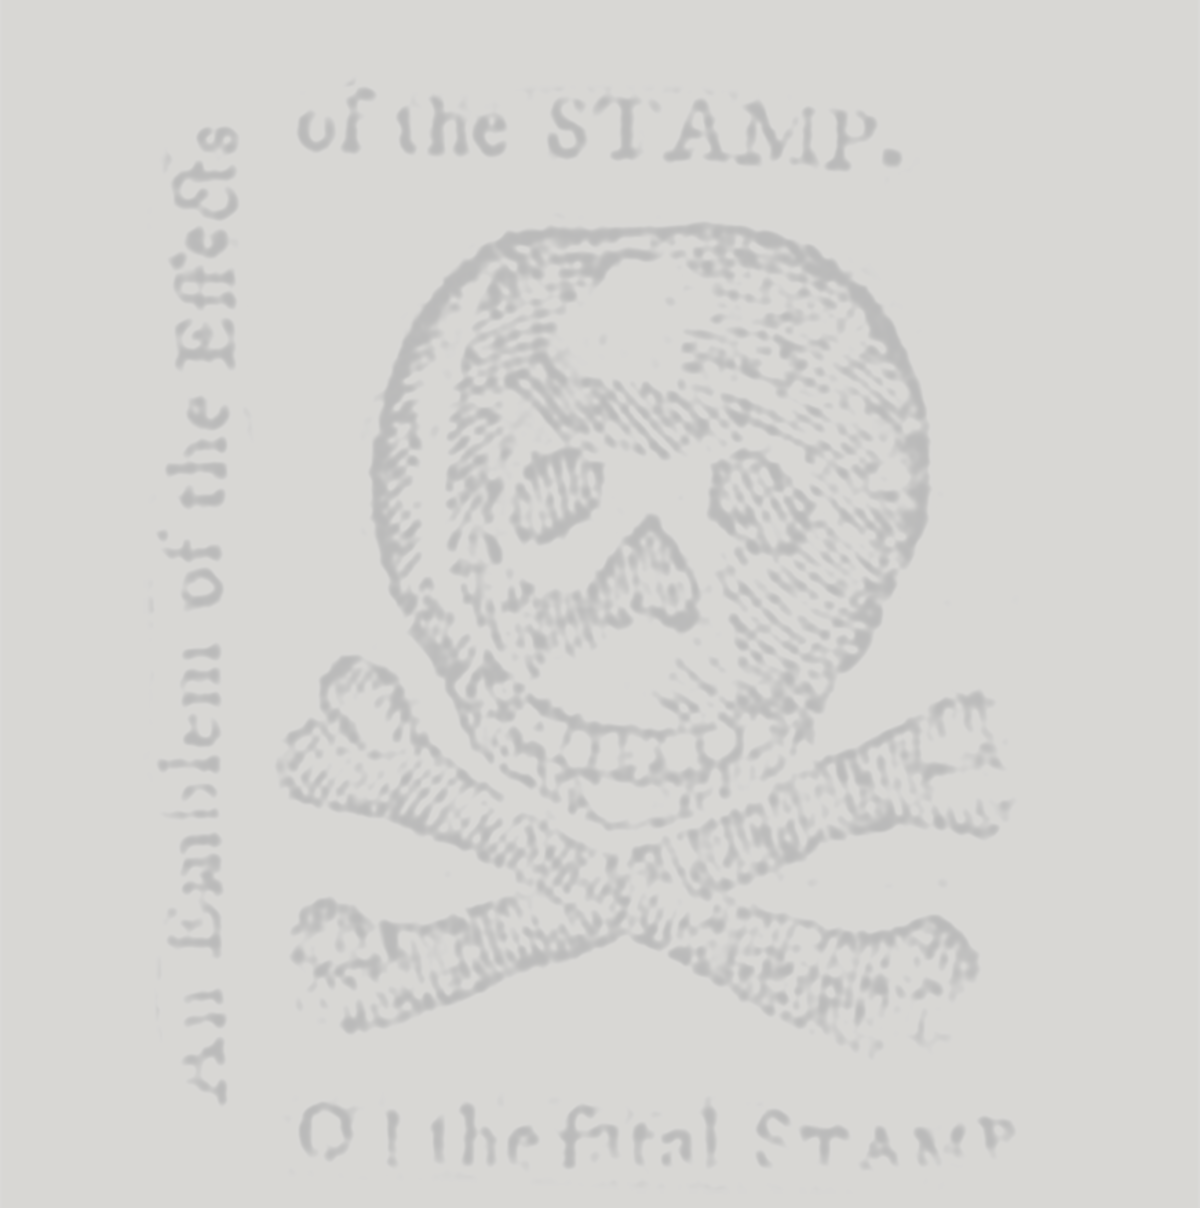 The Stamp Act